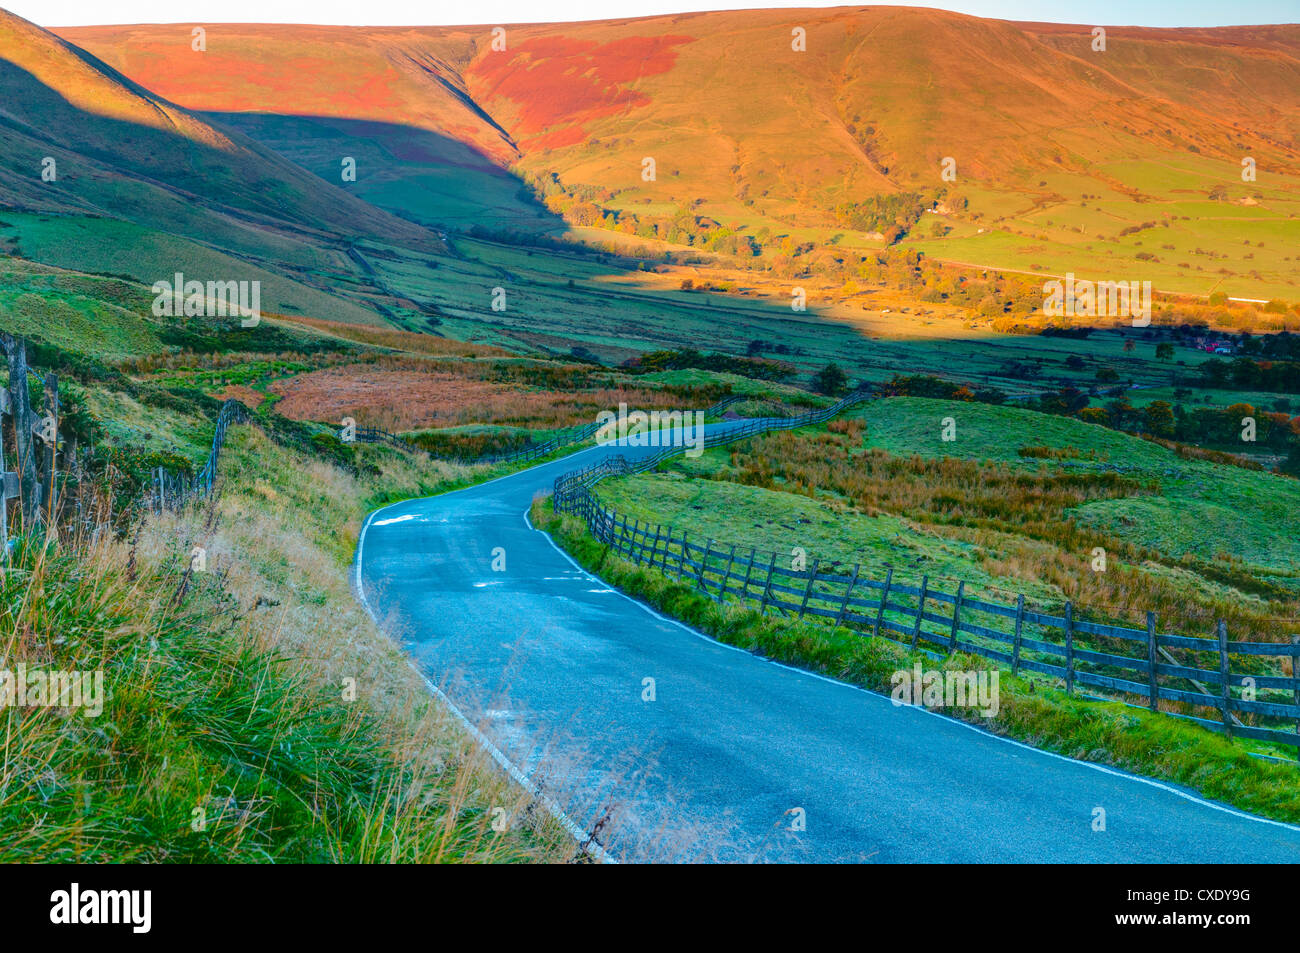 Vale de Edale, parc national de Peak District, Derbyshire, Angleterre Photo Stock